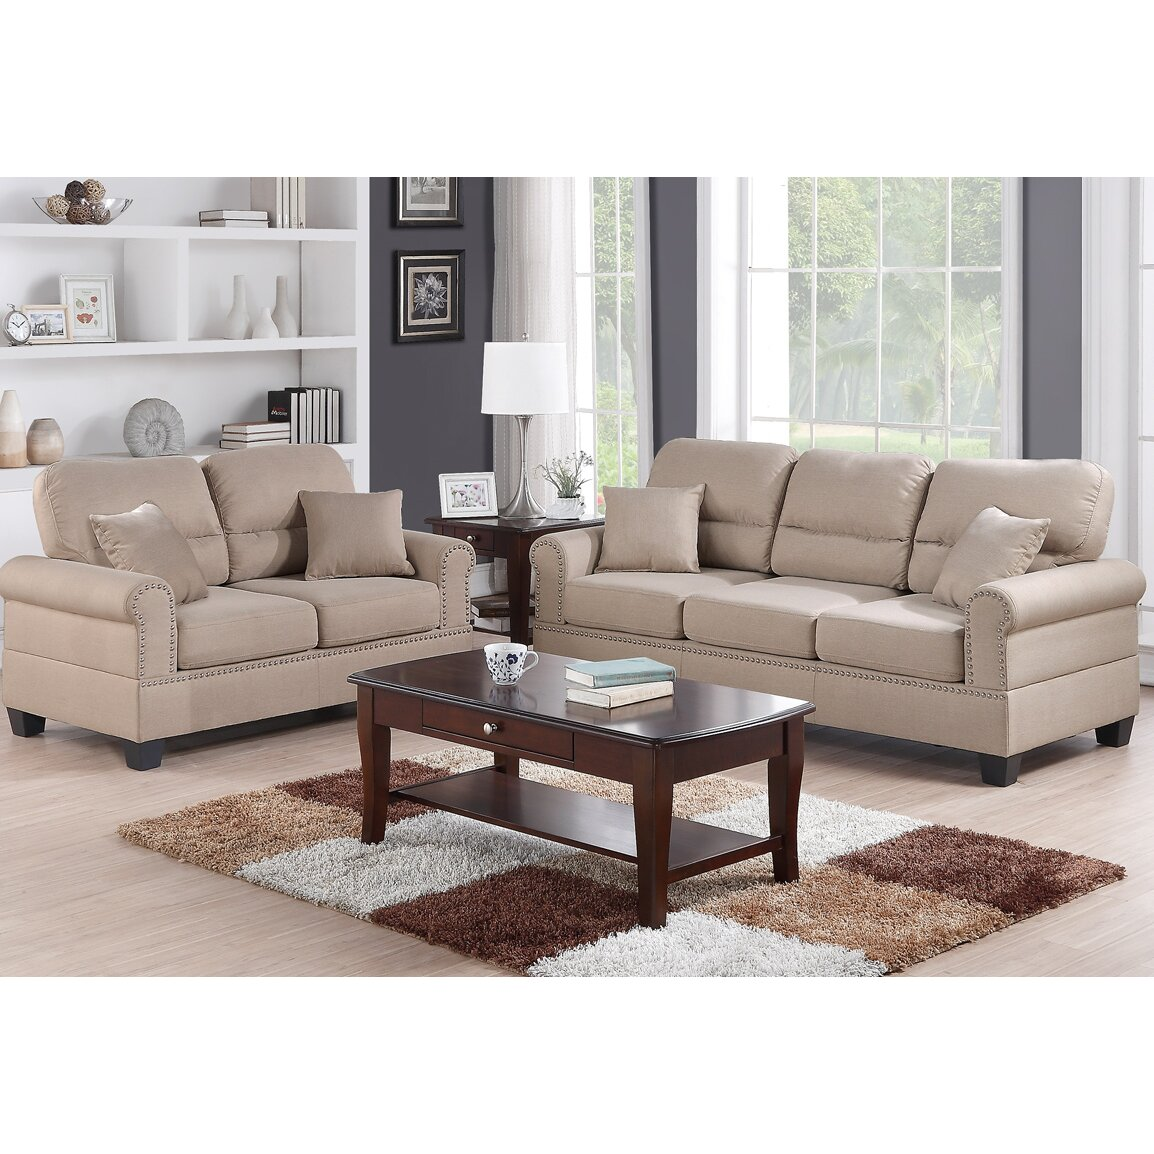 Poundex Bobkona Shelton Sofa And Loveseat Set Reviews Wayfair